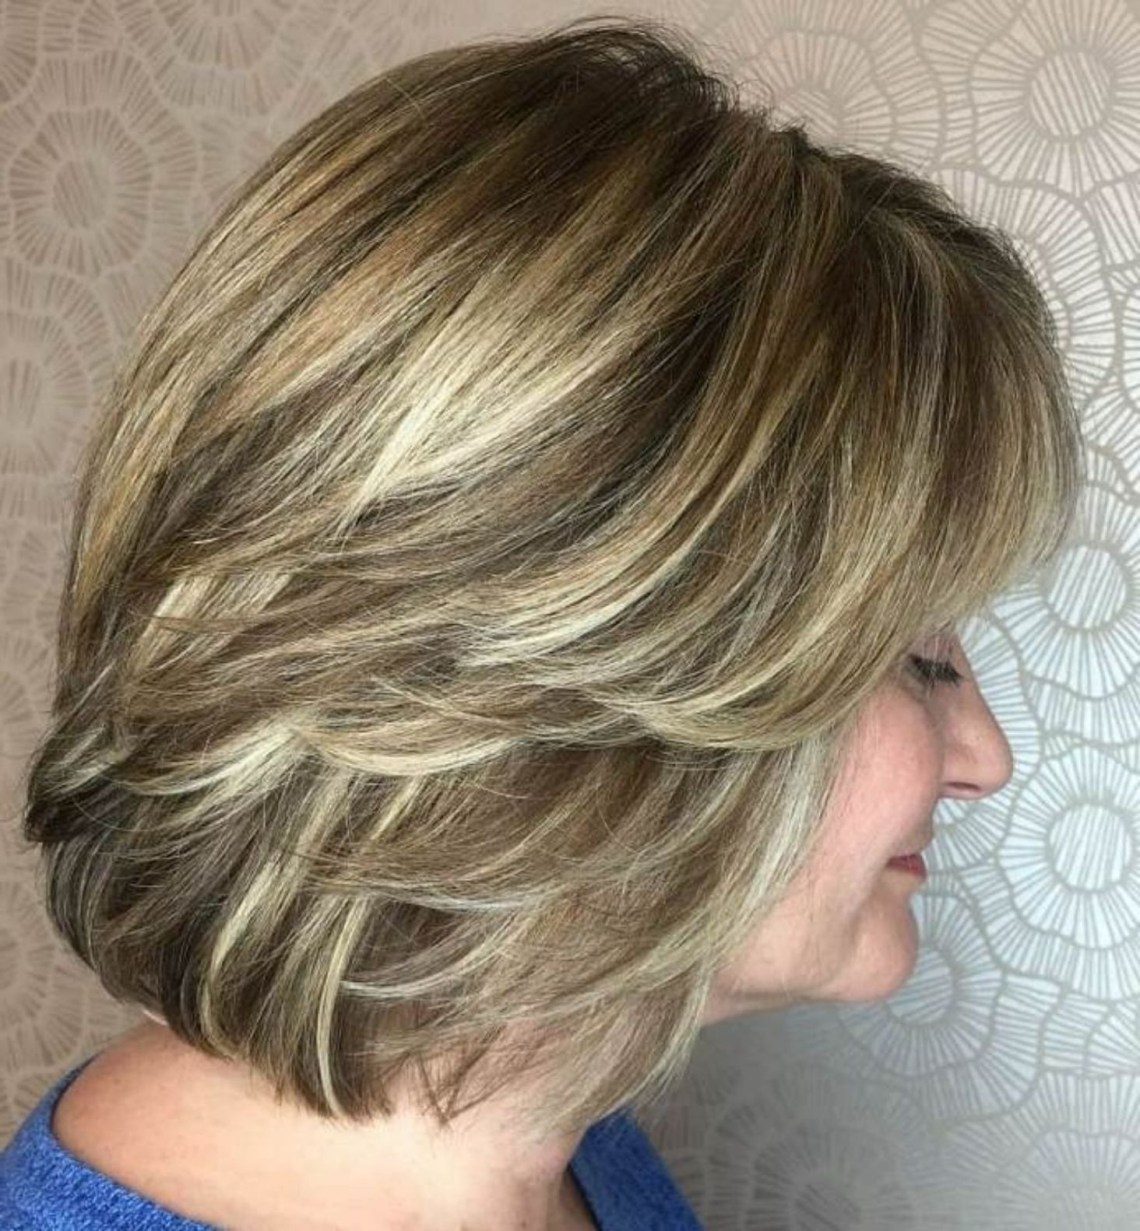 Over Medium Wash And Wear Haircut In 2020 | Thick Hair 10+ Stunning Medium Length Wash And Wear Hairstyles